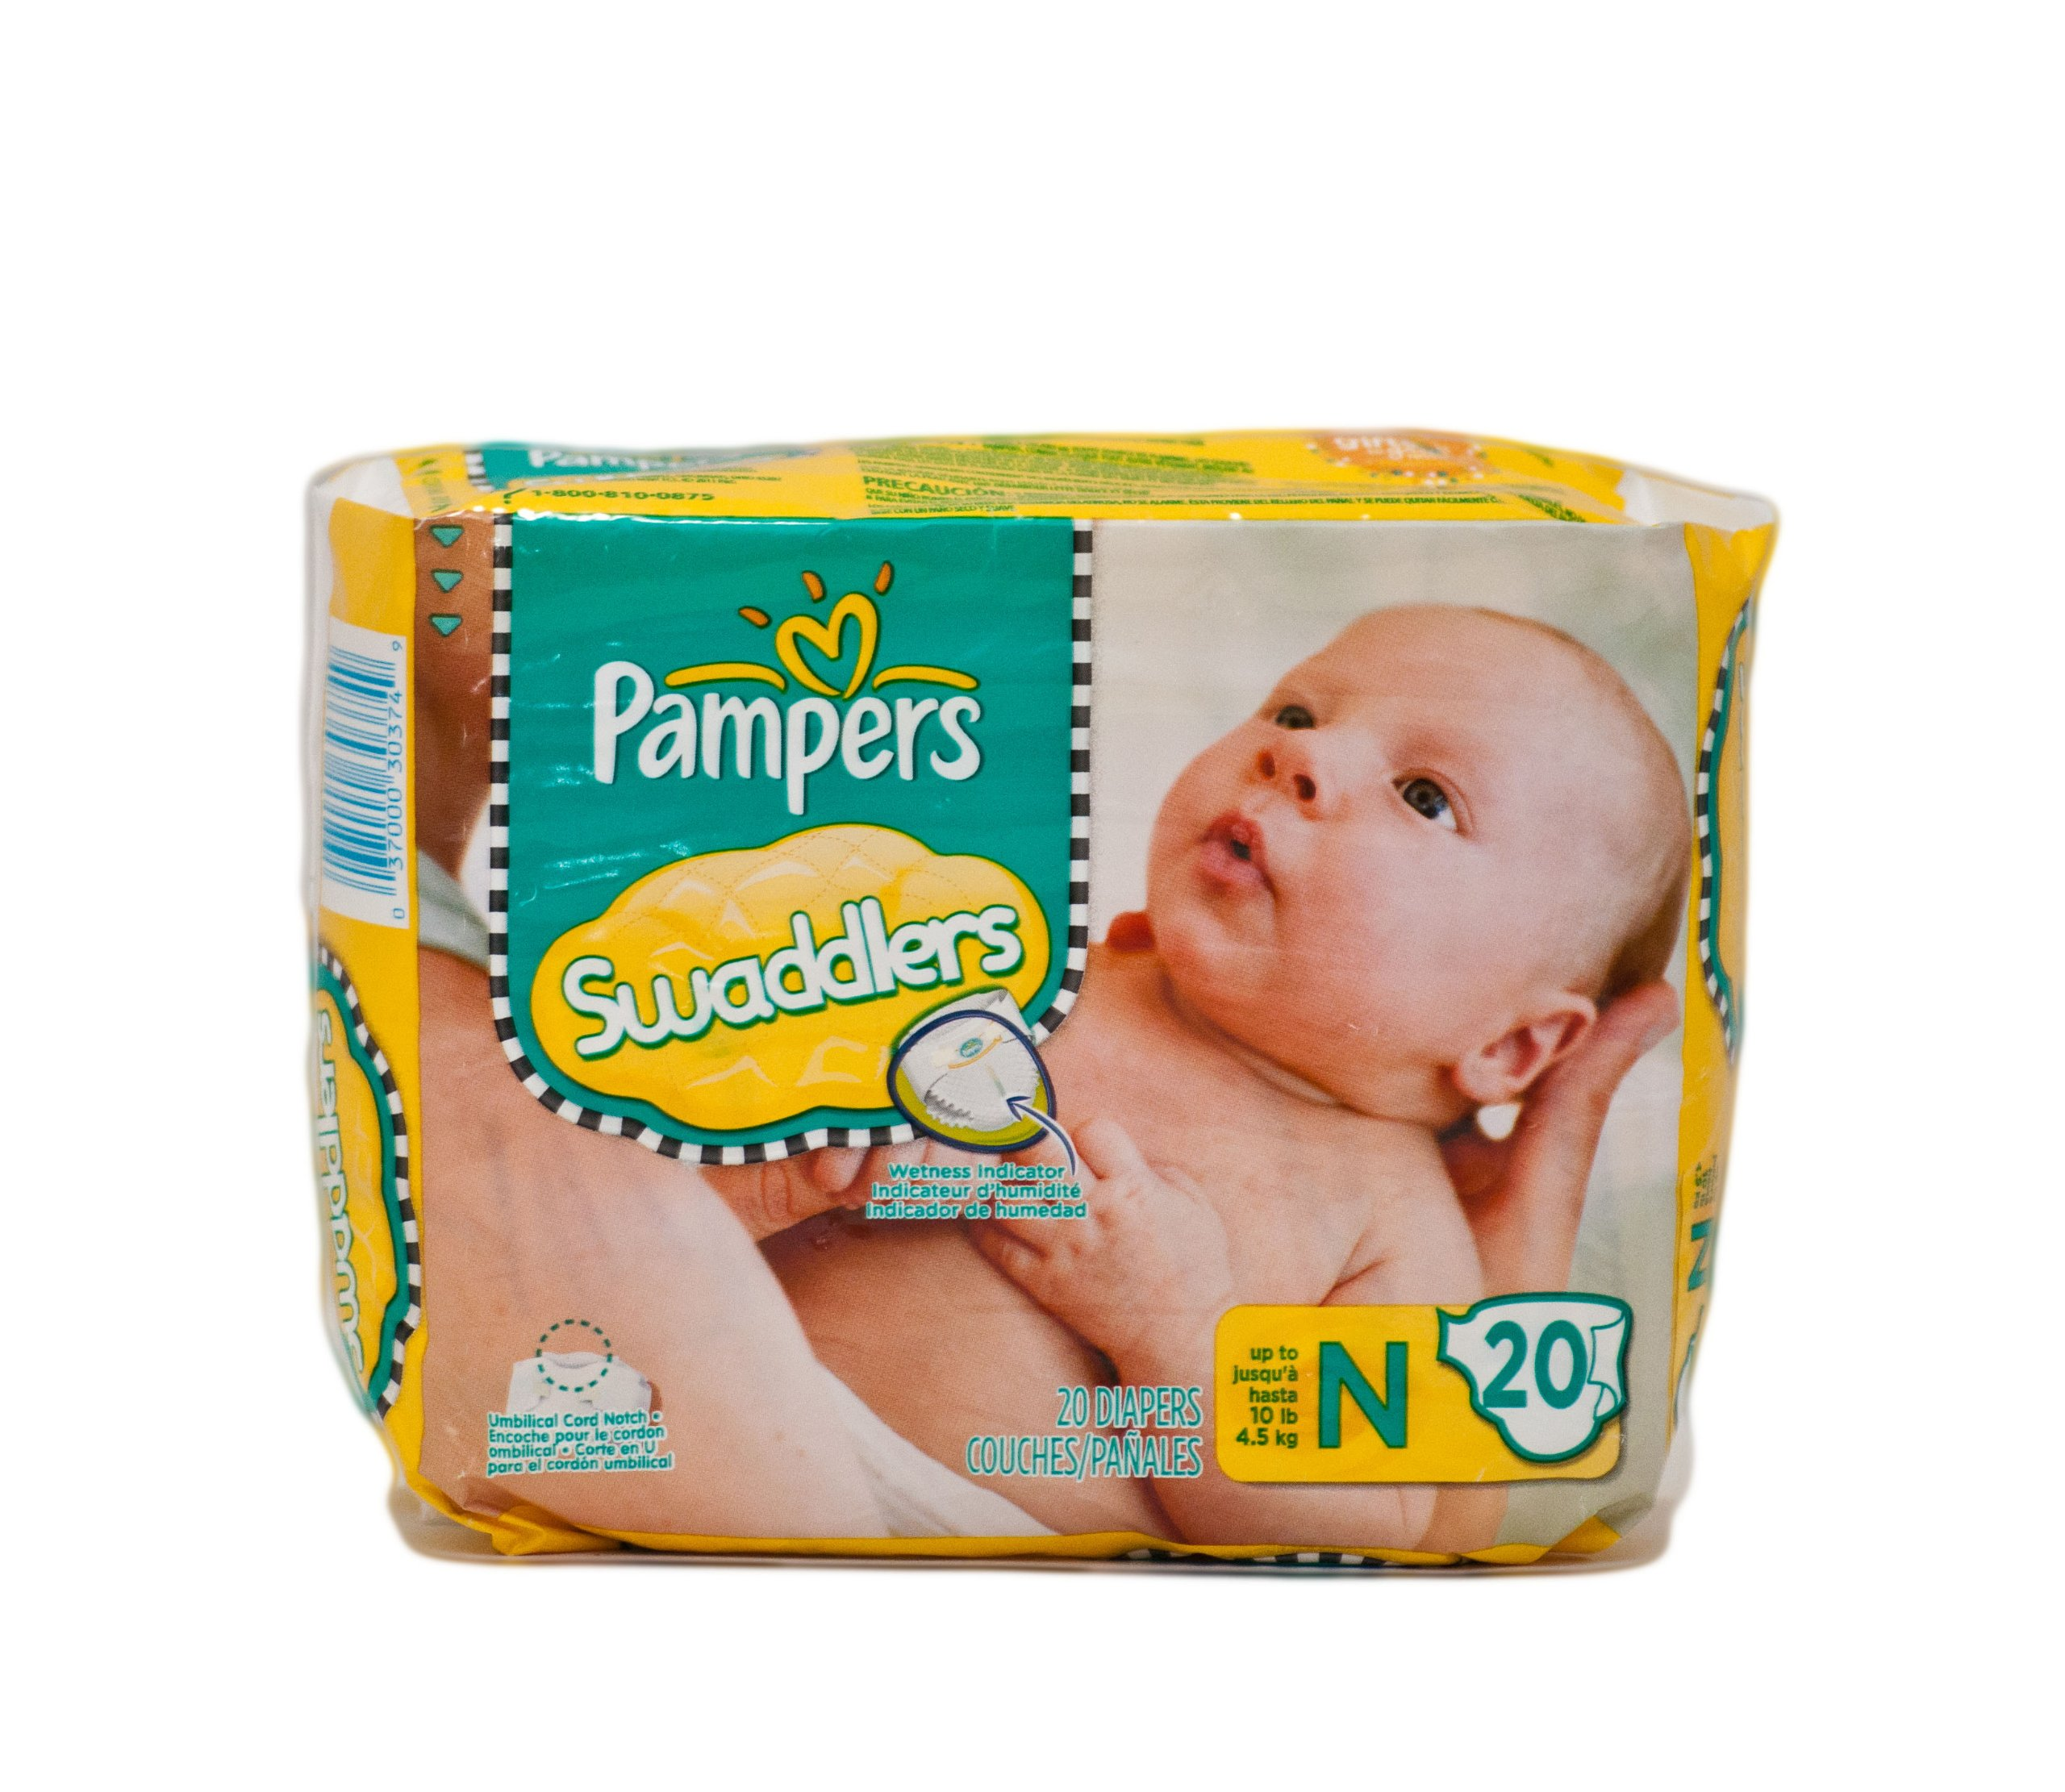 Pampers Swaddlers Newborn - 2 Cases of 240 Count Diapers